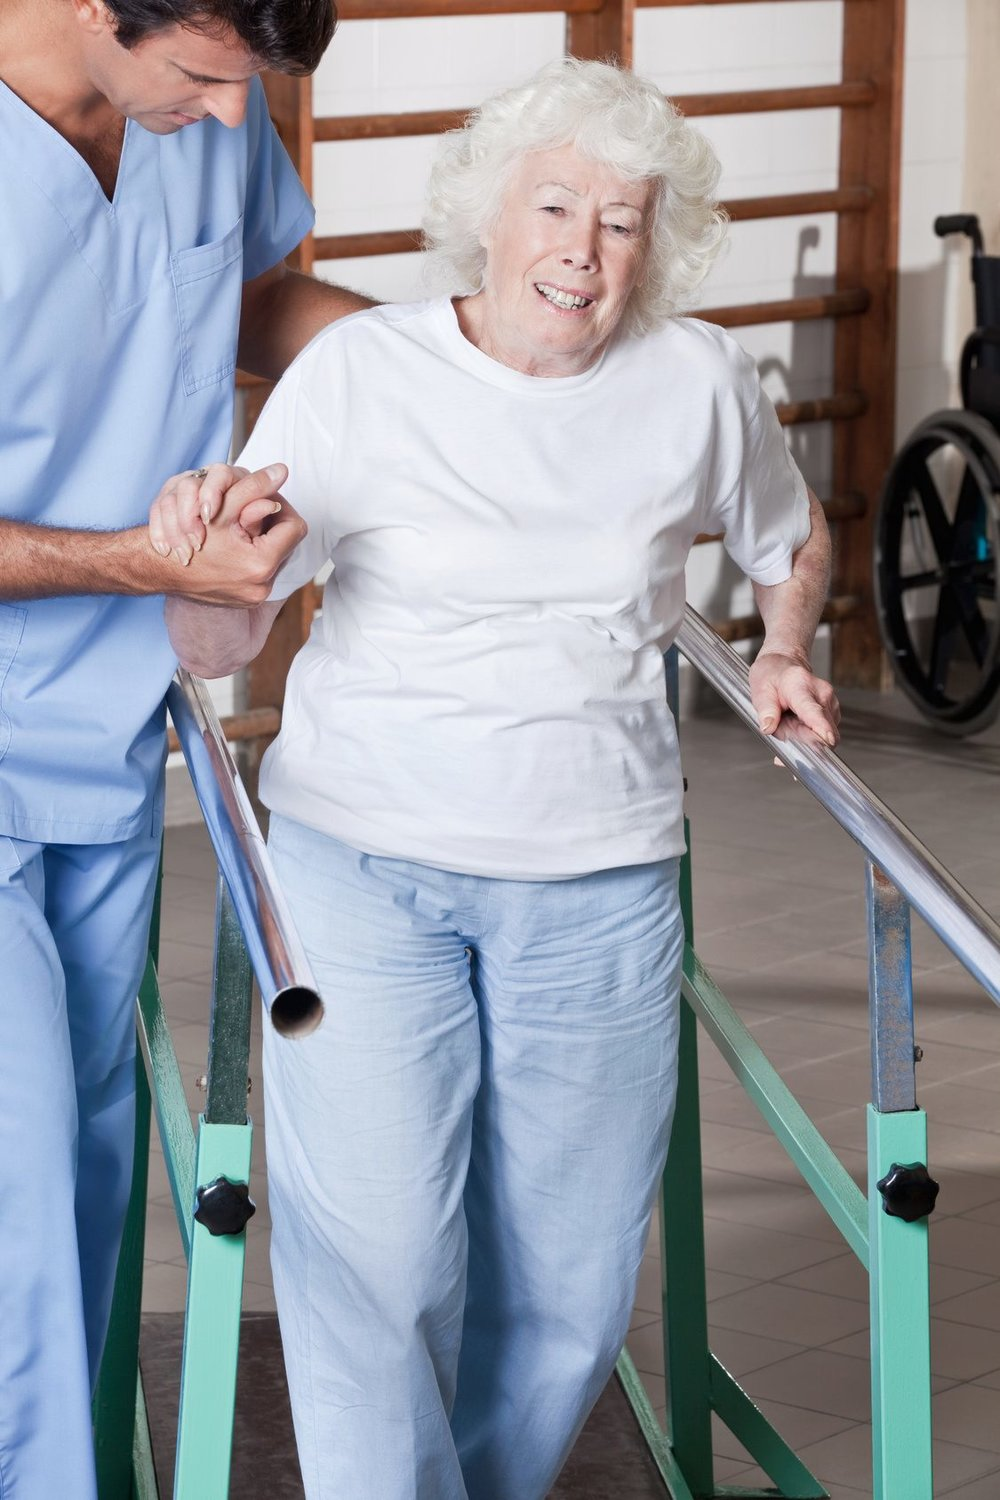 Geriatric Fall Risk Specialist? AAA Physical Therapy in Columbia, MD is here!